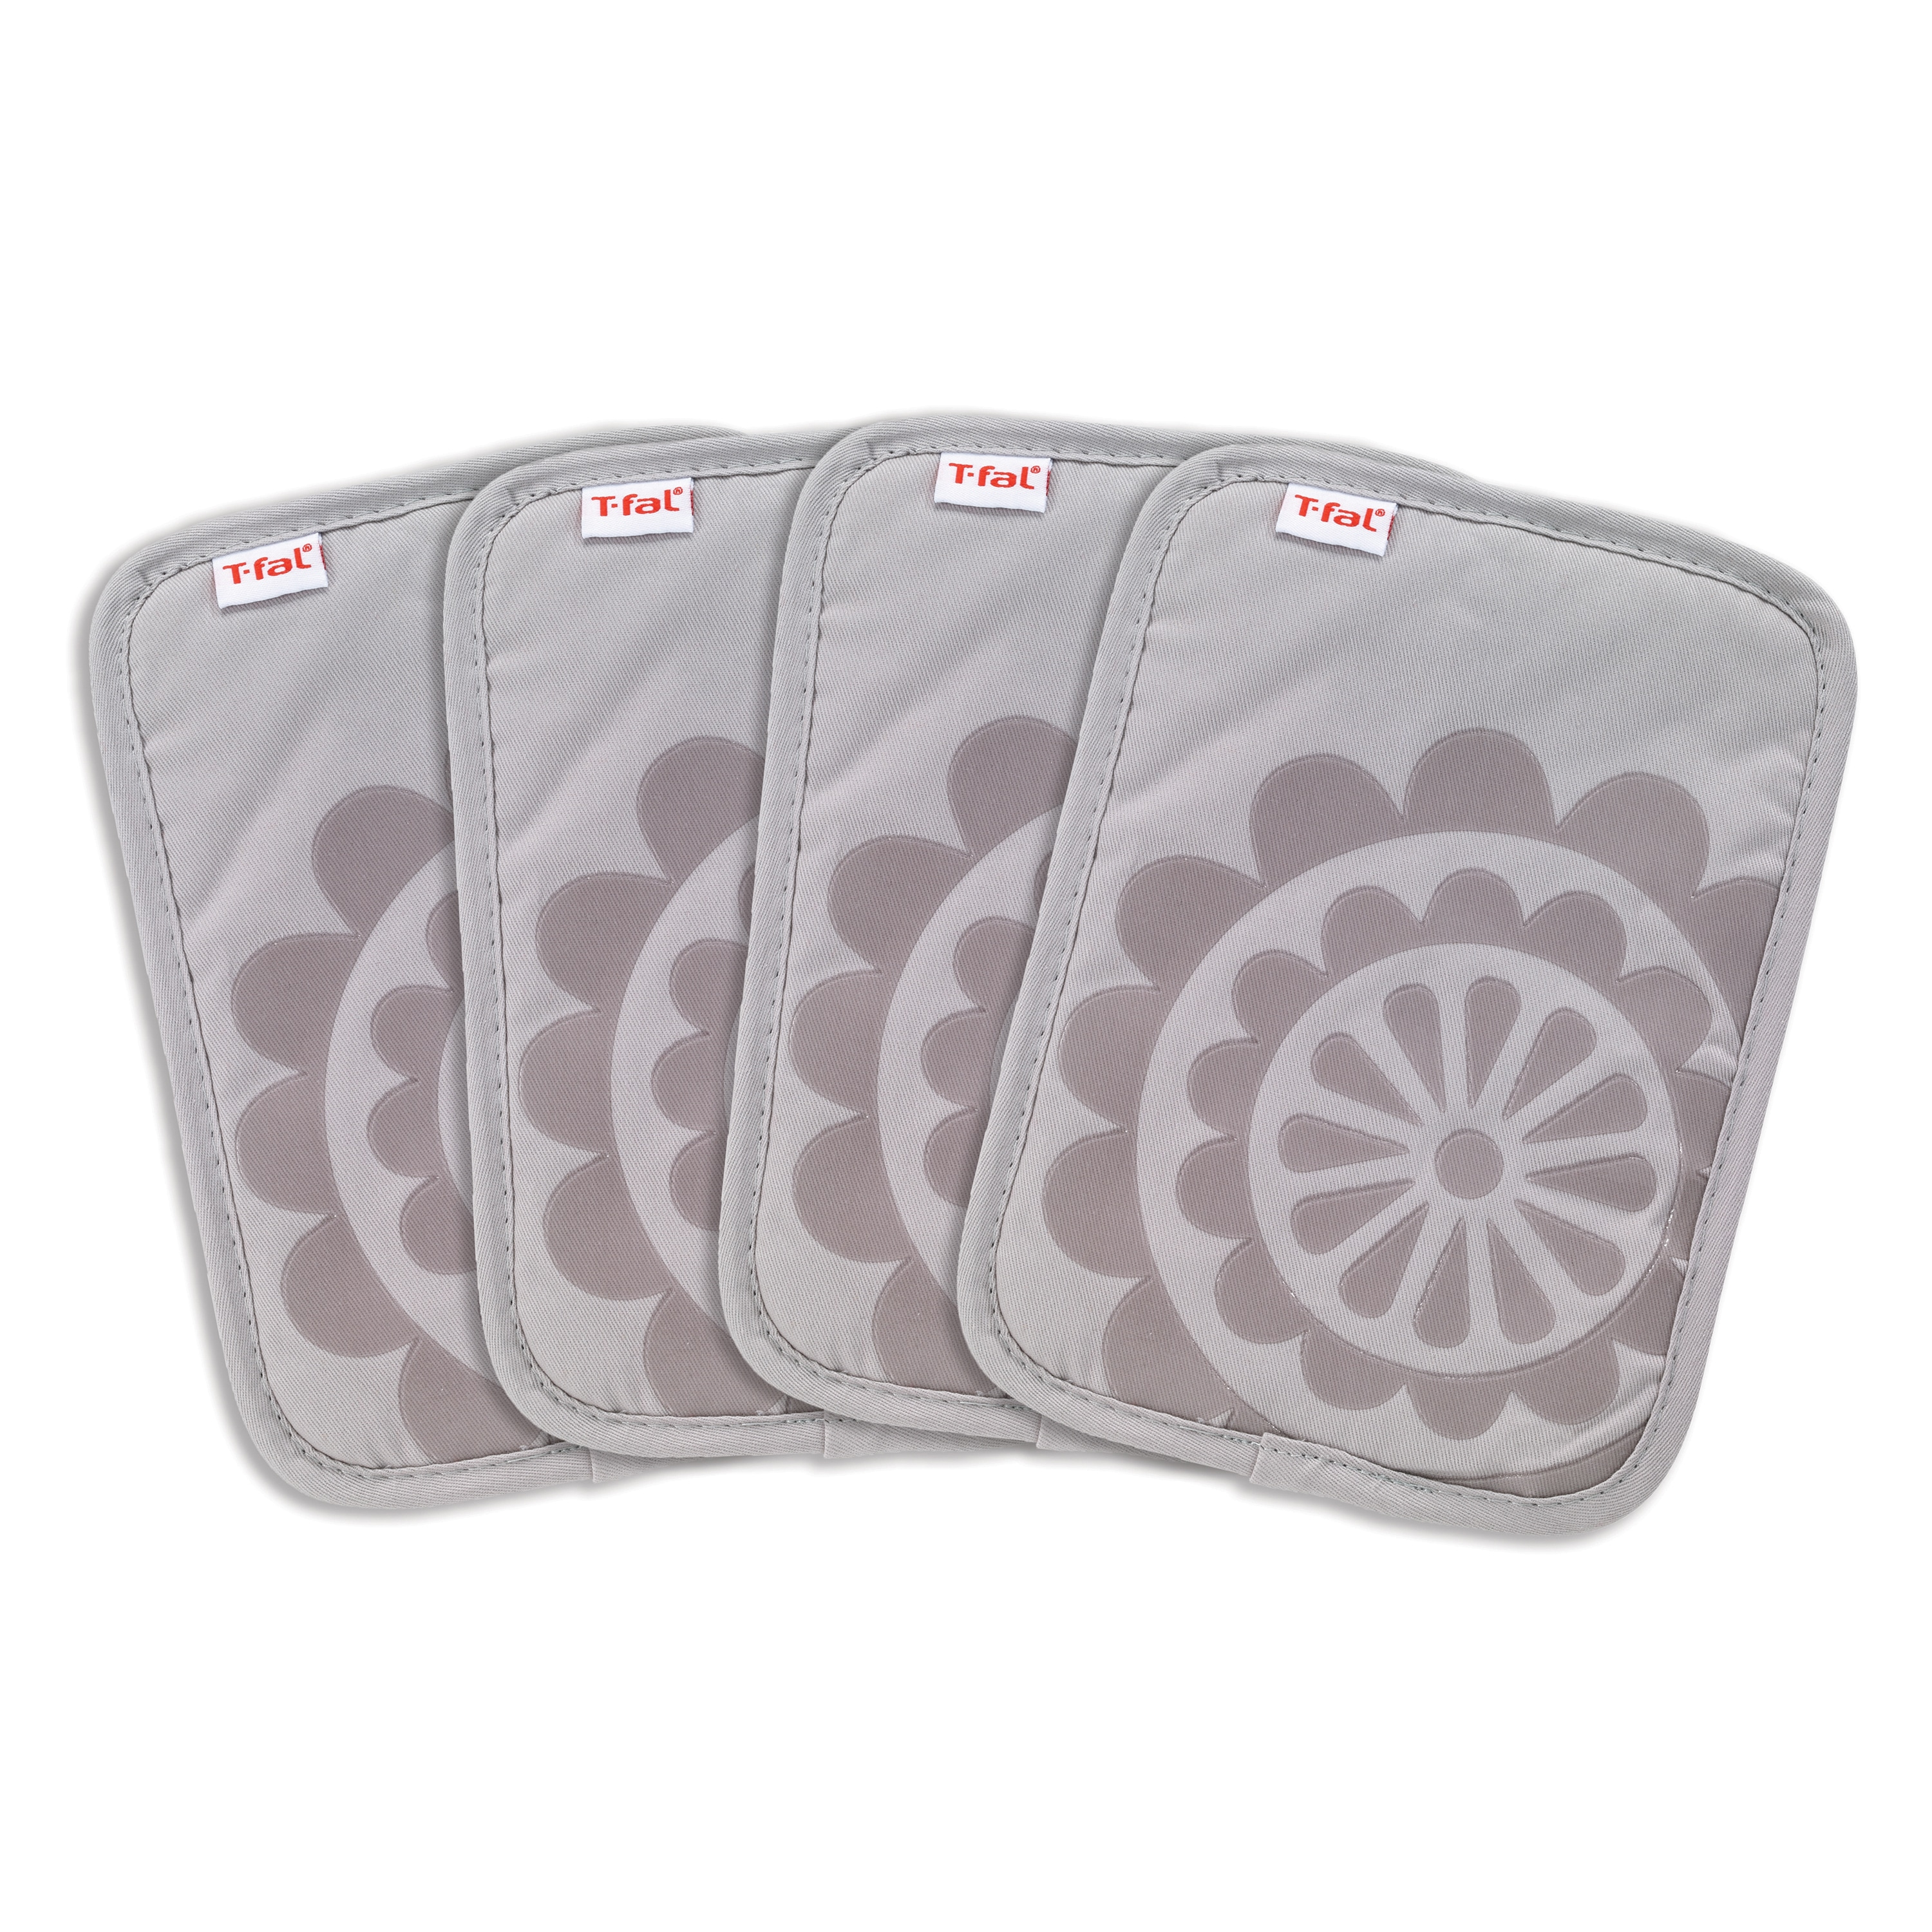 T Fal Textiles 4 Pack Print Silicone Medallion Cotton Twill Pot Holder Set Overstock 15635391 Sand